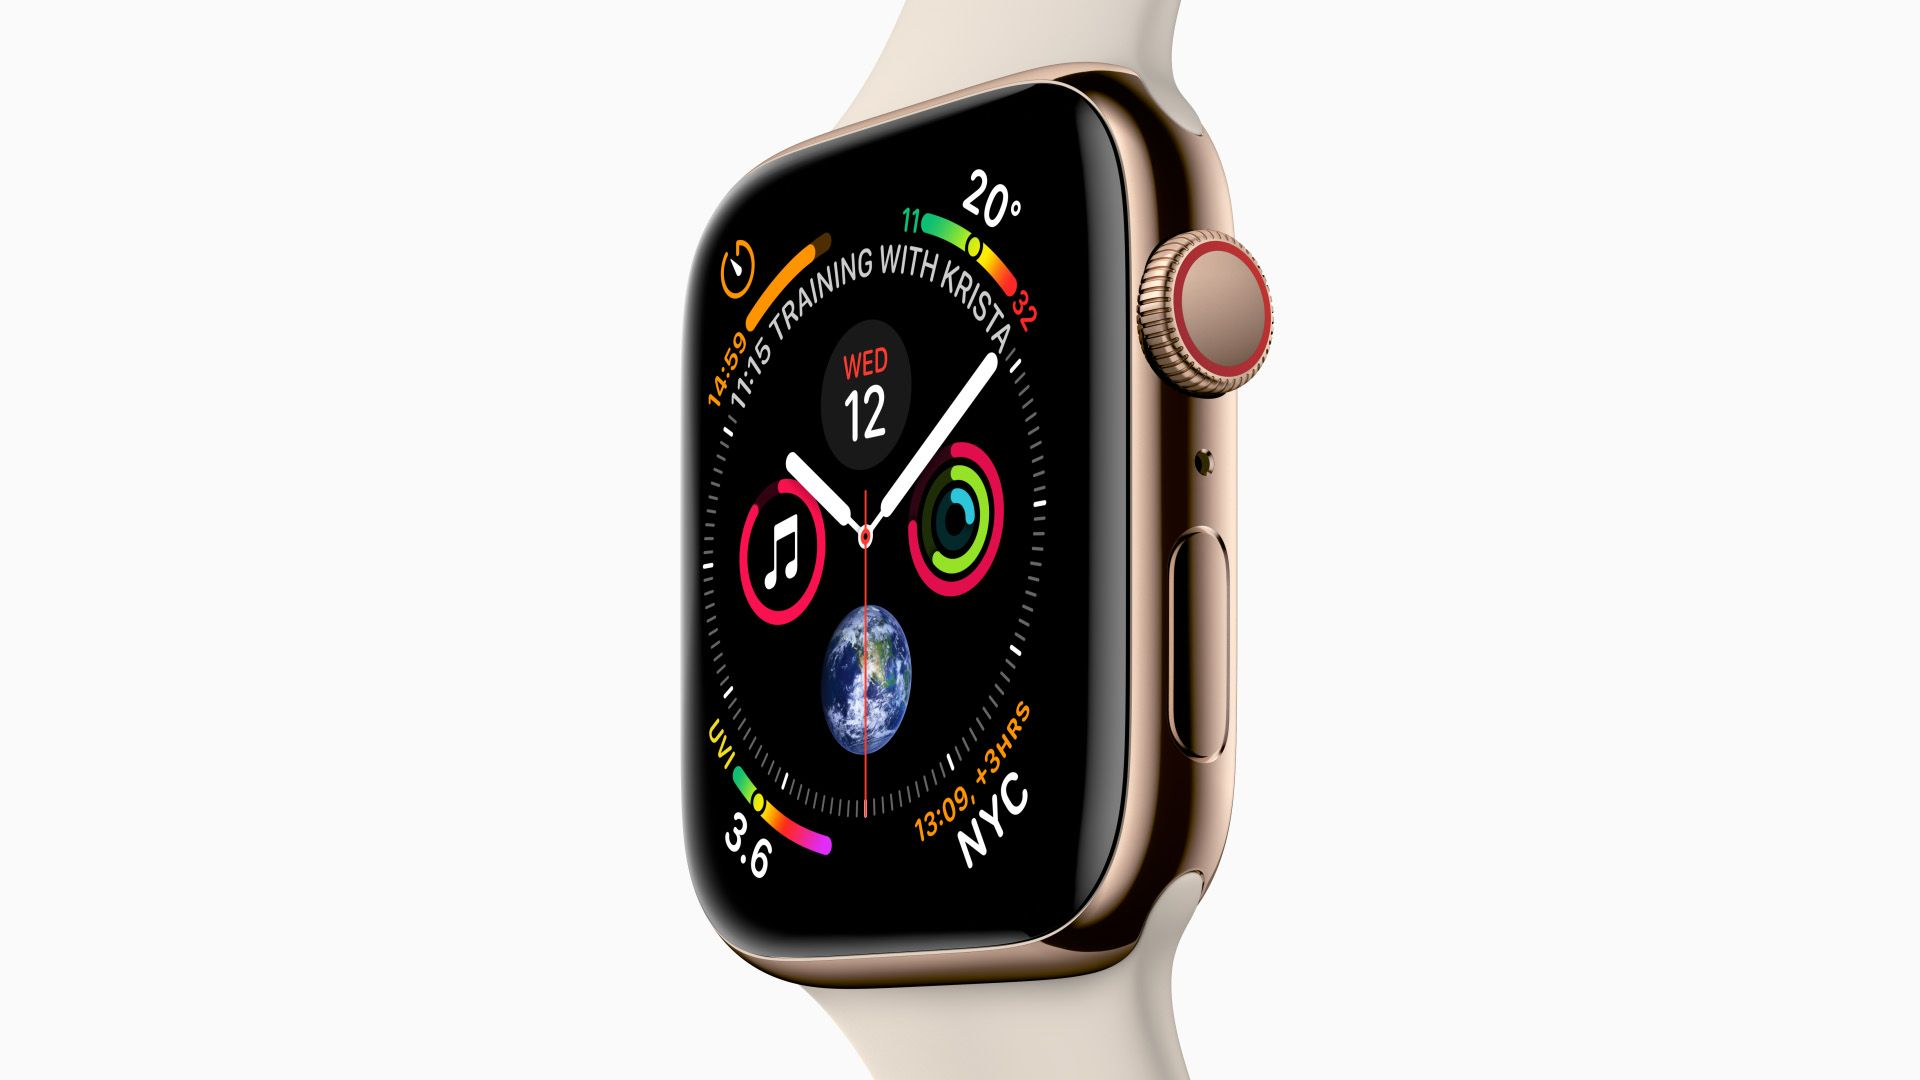 Introducing Apple Watch Series 4